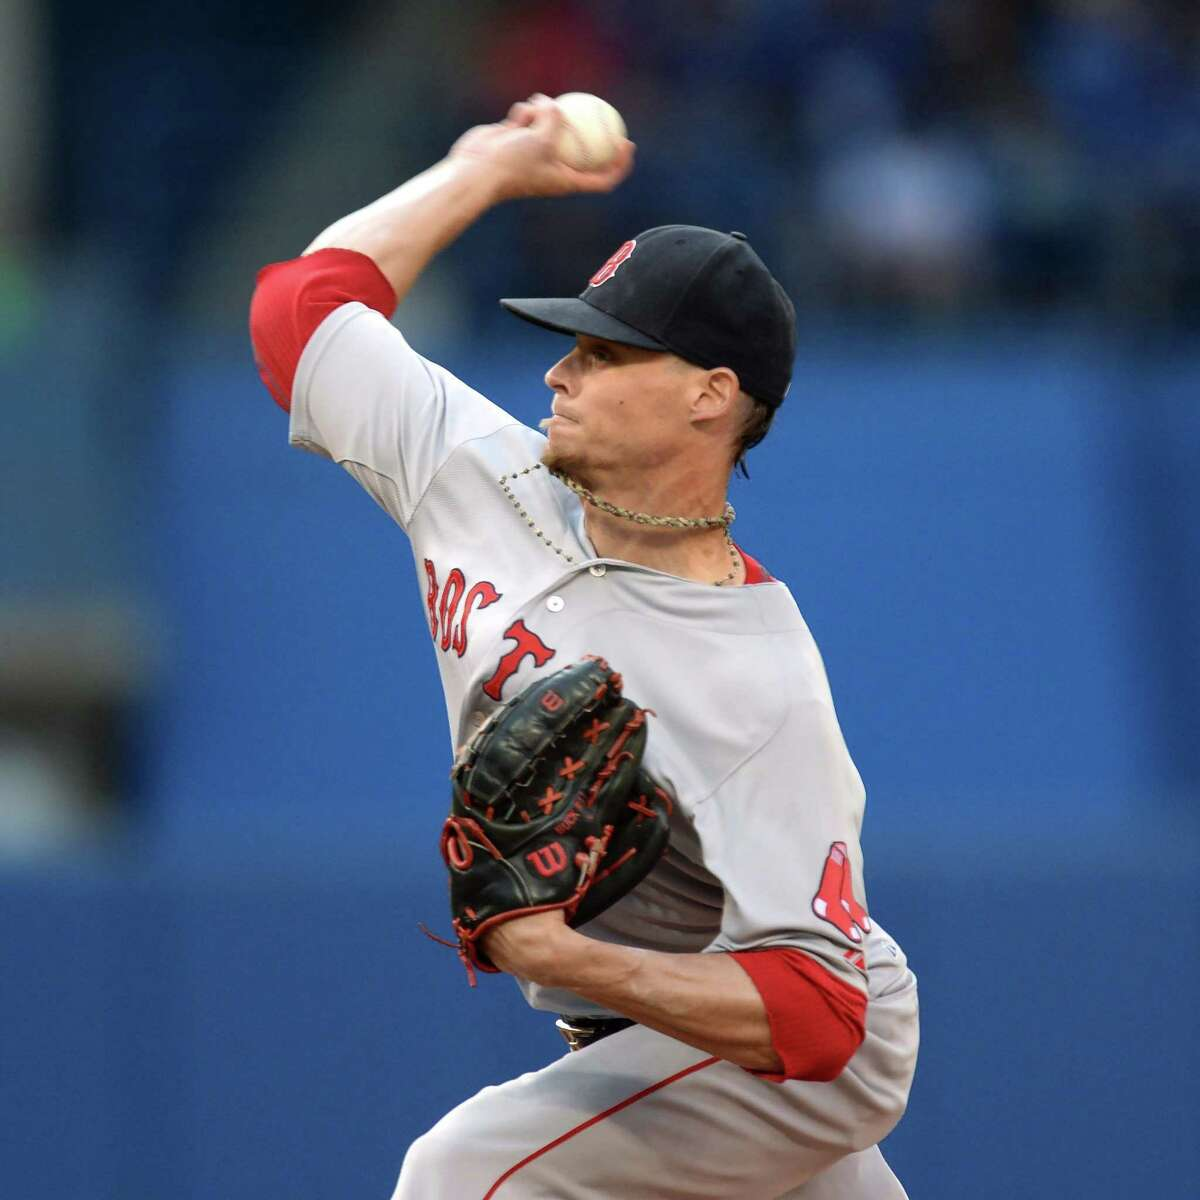 The Canadian Press via AP Boston Red Sox pitcher Clay Buchholz works against the Toronto Blue Jays during Monday's 3-1 Red Sox victory.